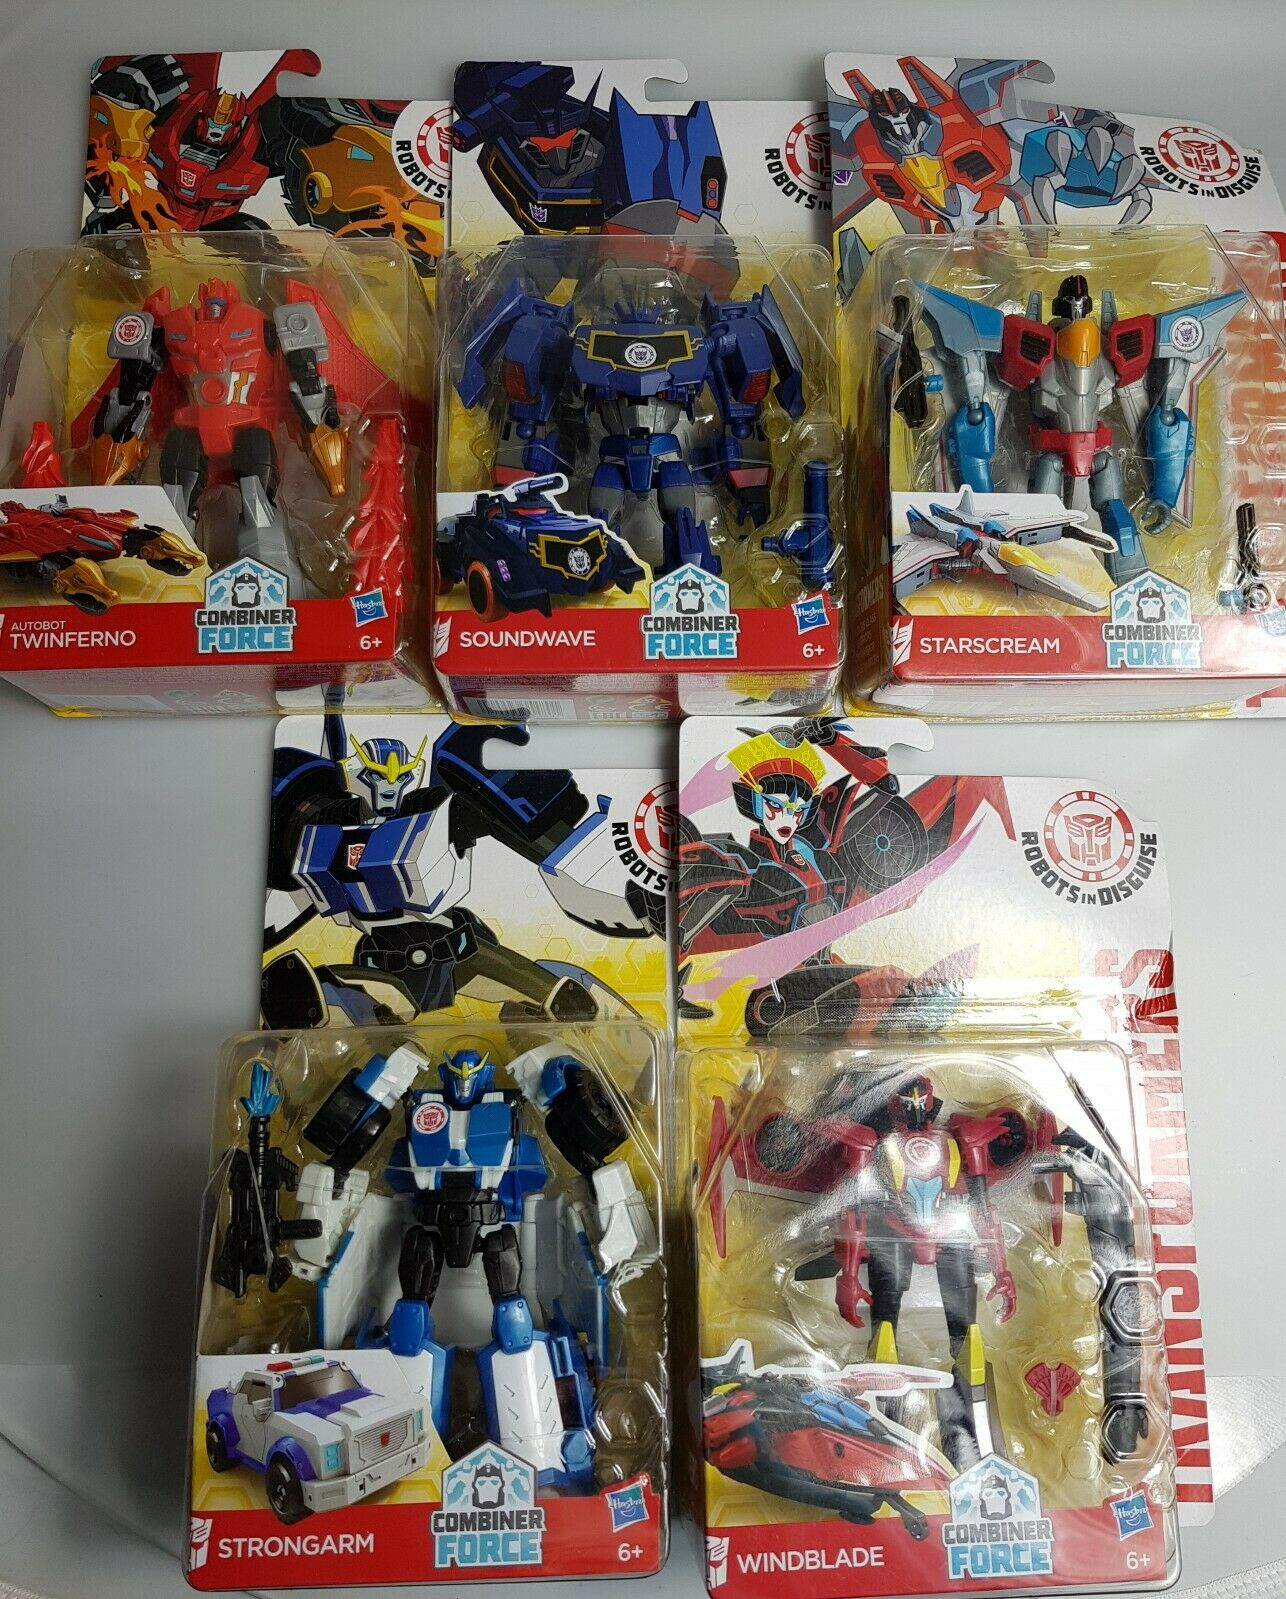 Transformers Combinador fuerza WINDBLADE Soundwave Strongarm Starscream twinferno